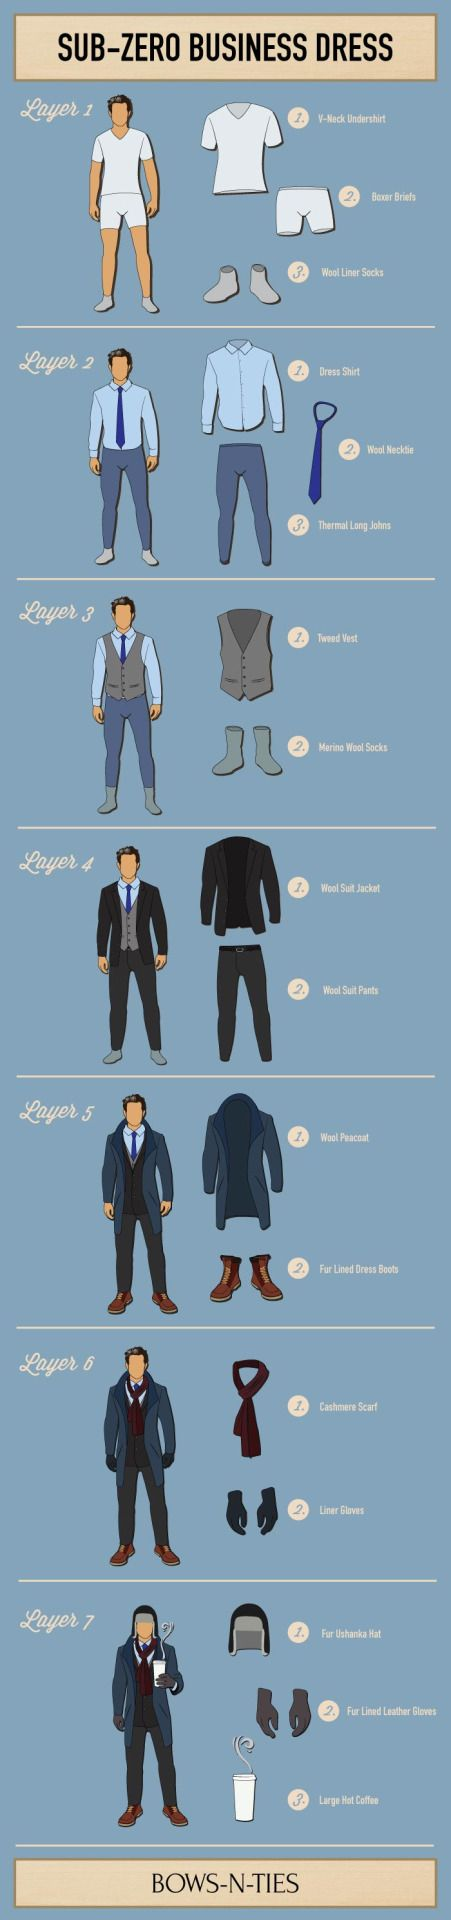 Snowmageddon Layering Guide to fight record breaking:, history making winter storms. Fight the freeze with this thorough start to finish layering guide.